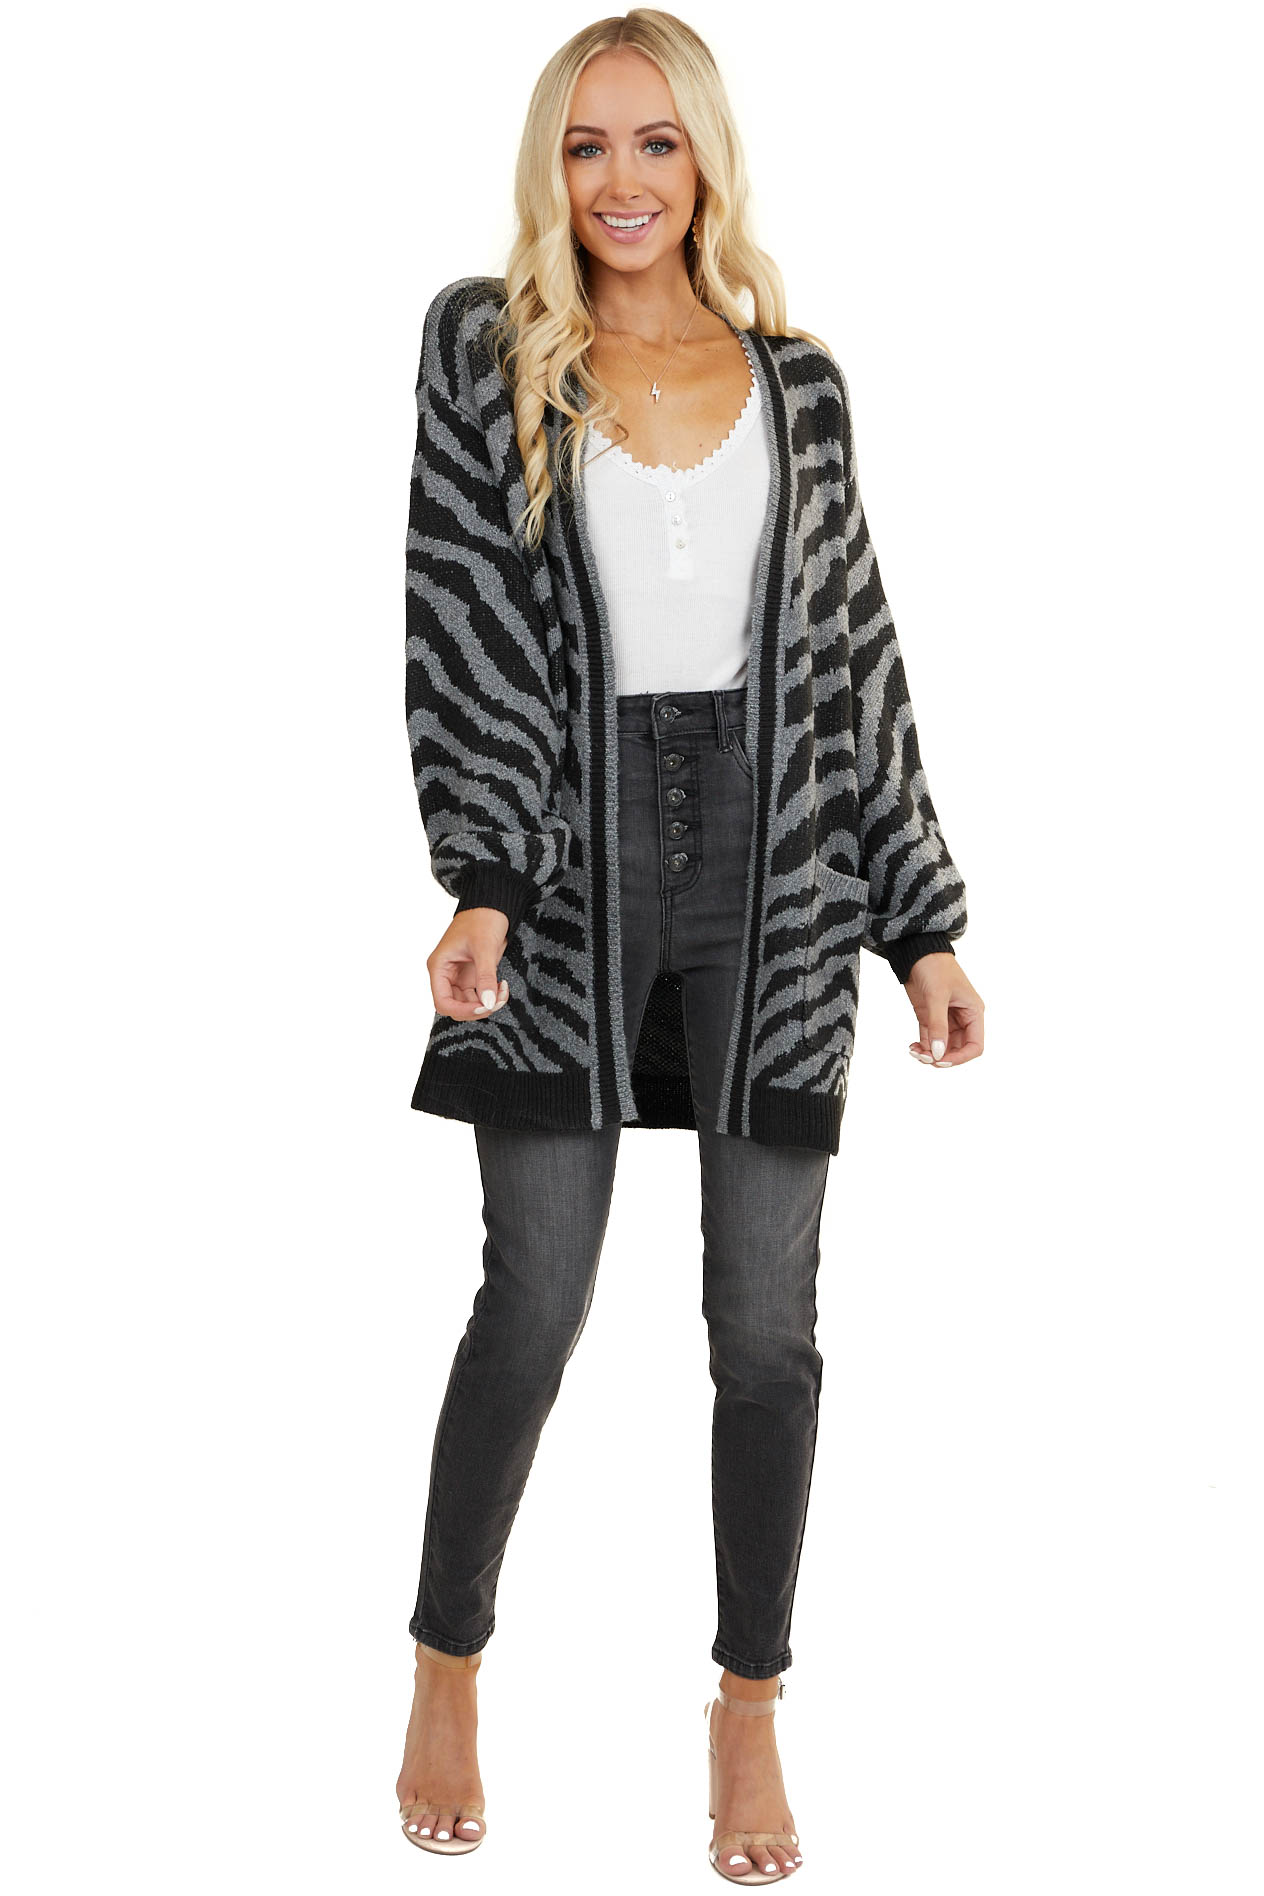 Charcoal and Black Zebra Sweater Cardigan with Pockets